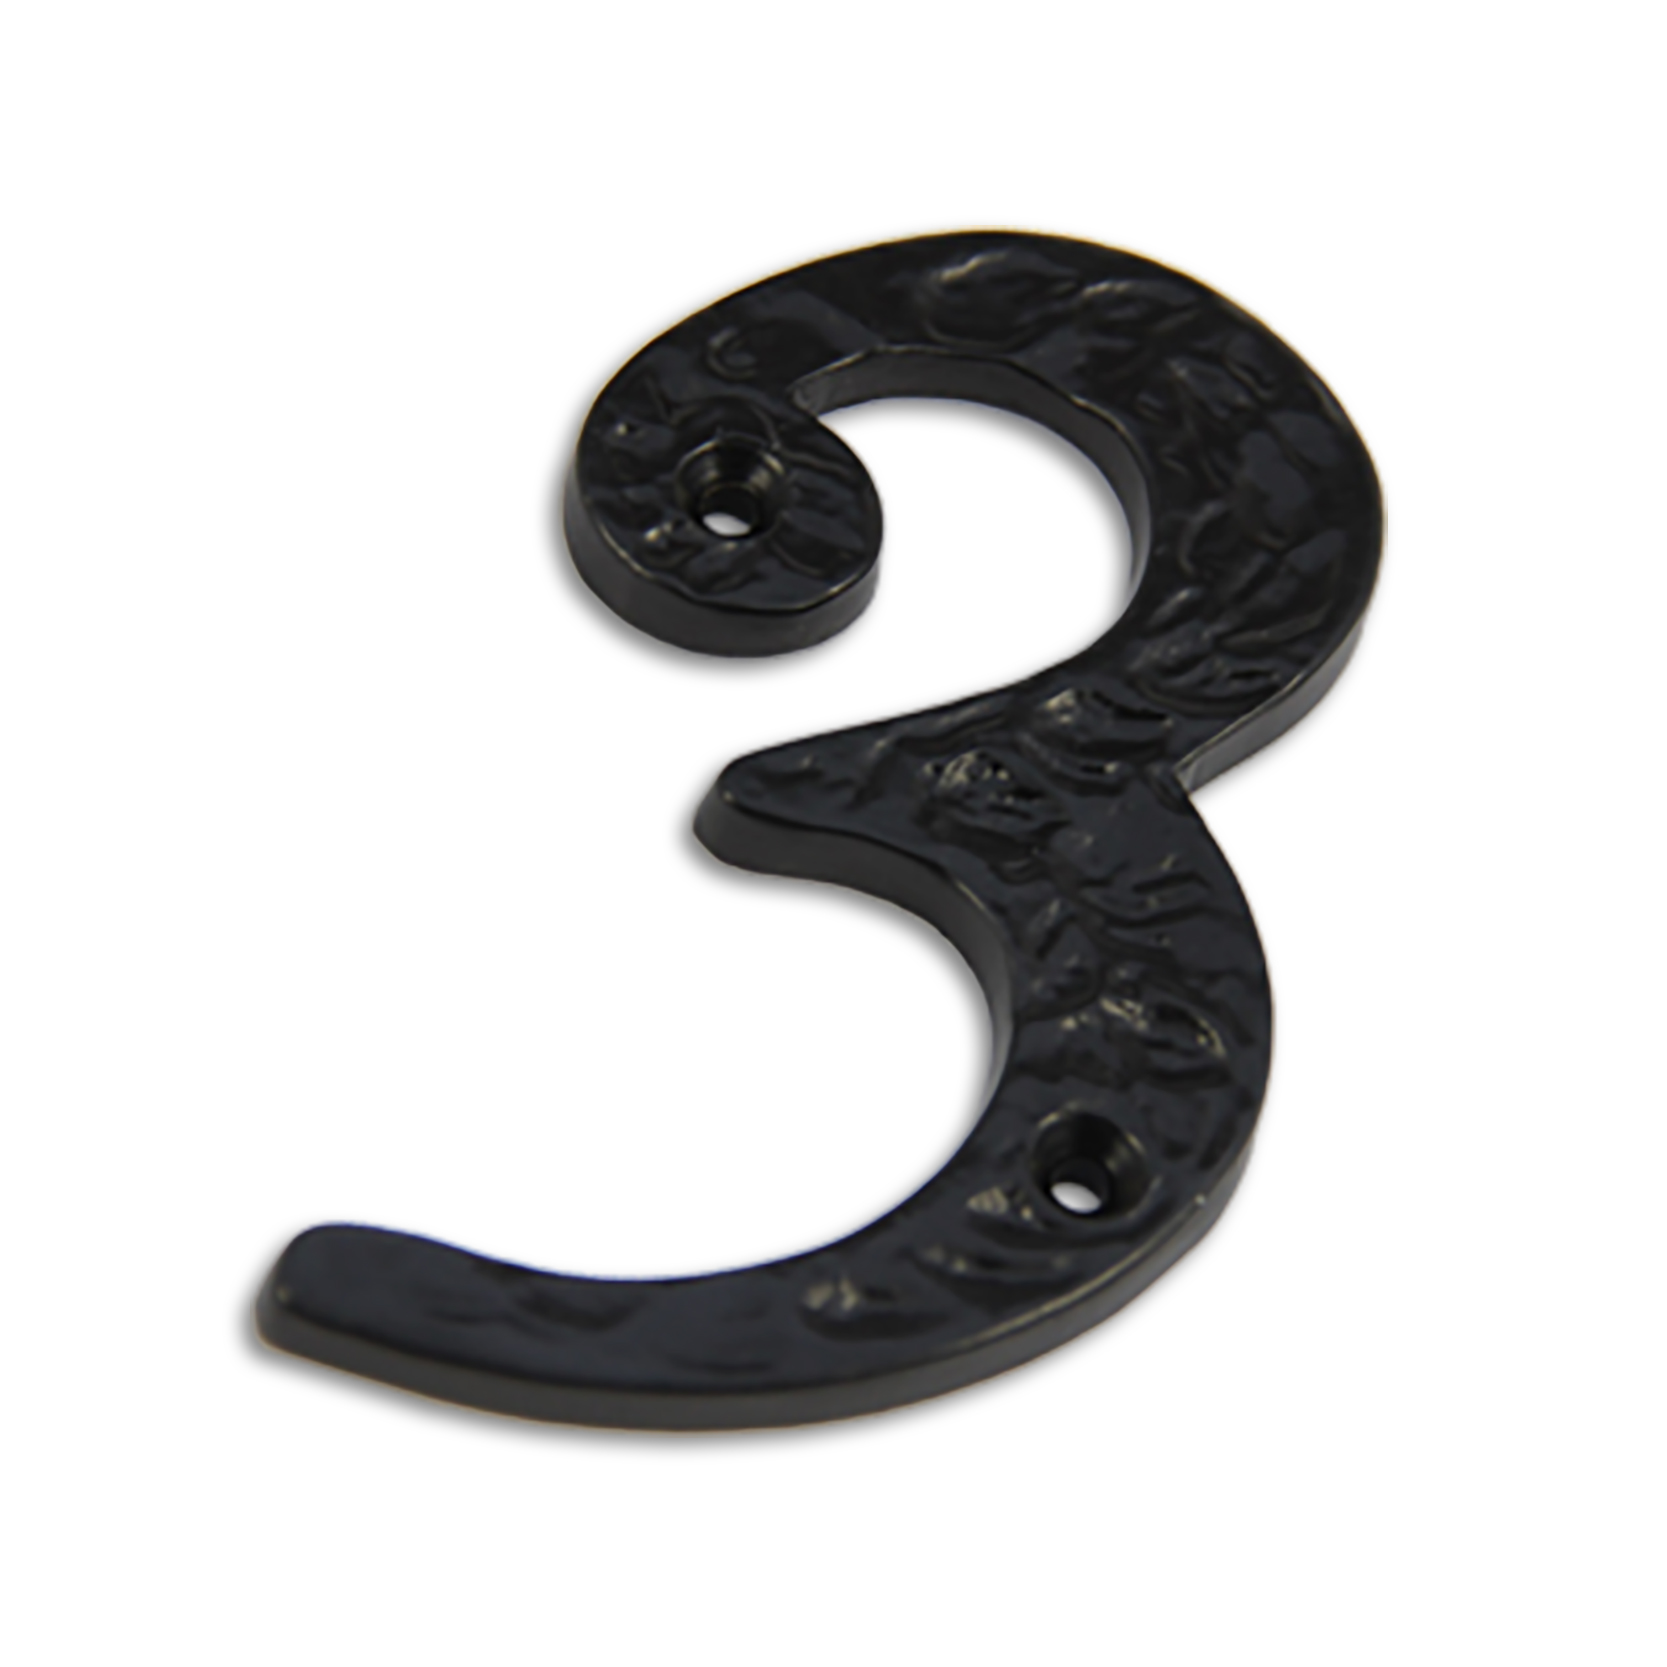 4-inch iron metal house number in iron black finish - metal number 3